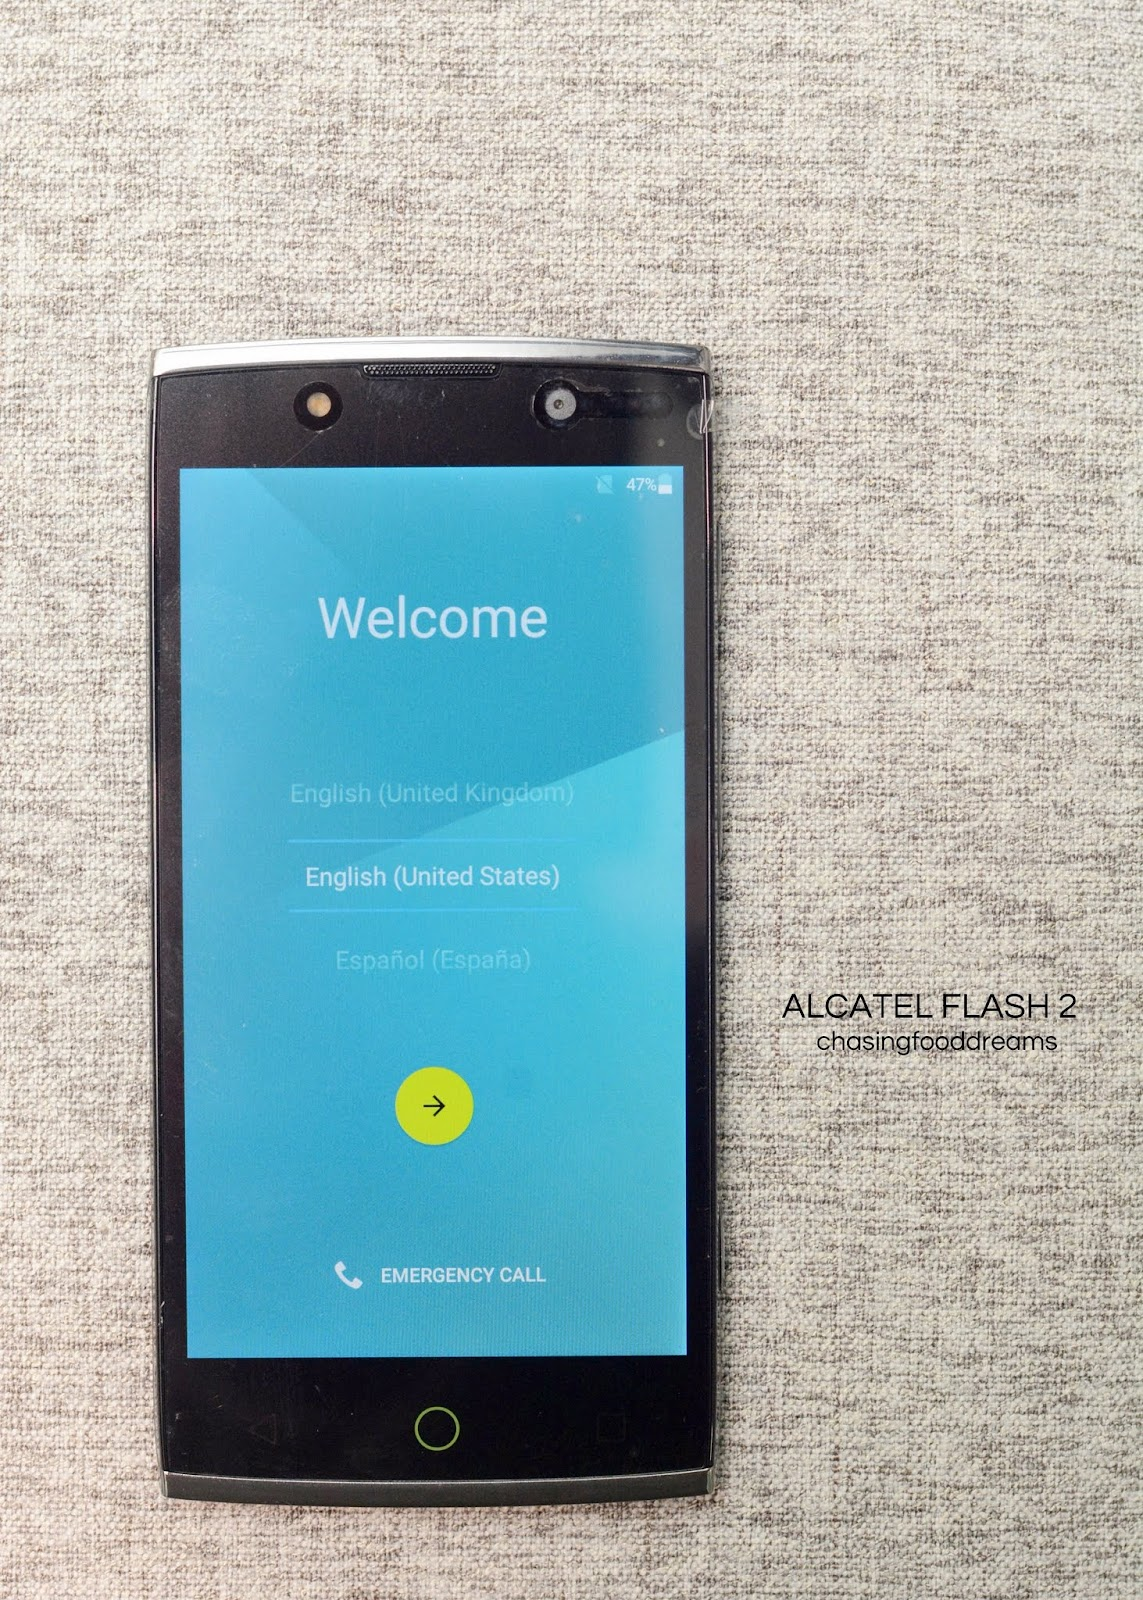 Chasing Food Dreams Alcatel Flash 2 Review Samsung Note 101 2014 Edition Garansi Indonesia Black The Moment I Set My Eyes On Sleekness Came To Mind Ergonomically Design Smartphone By One Touch Is Sleek Slim And Swanky